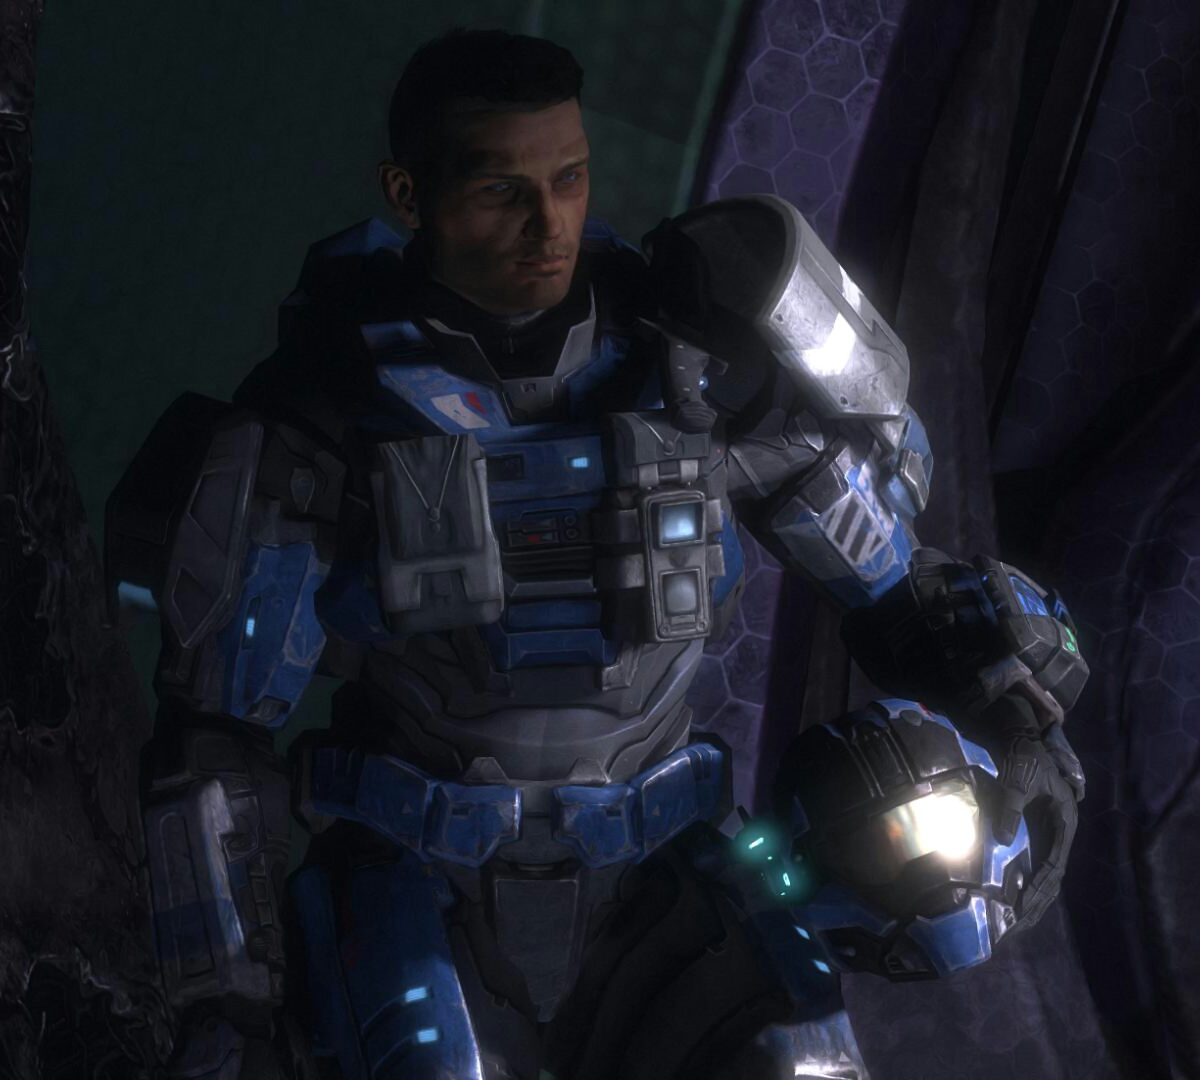 Carter - Series 5 Halo Reach Action Figure Review